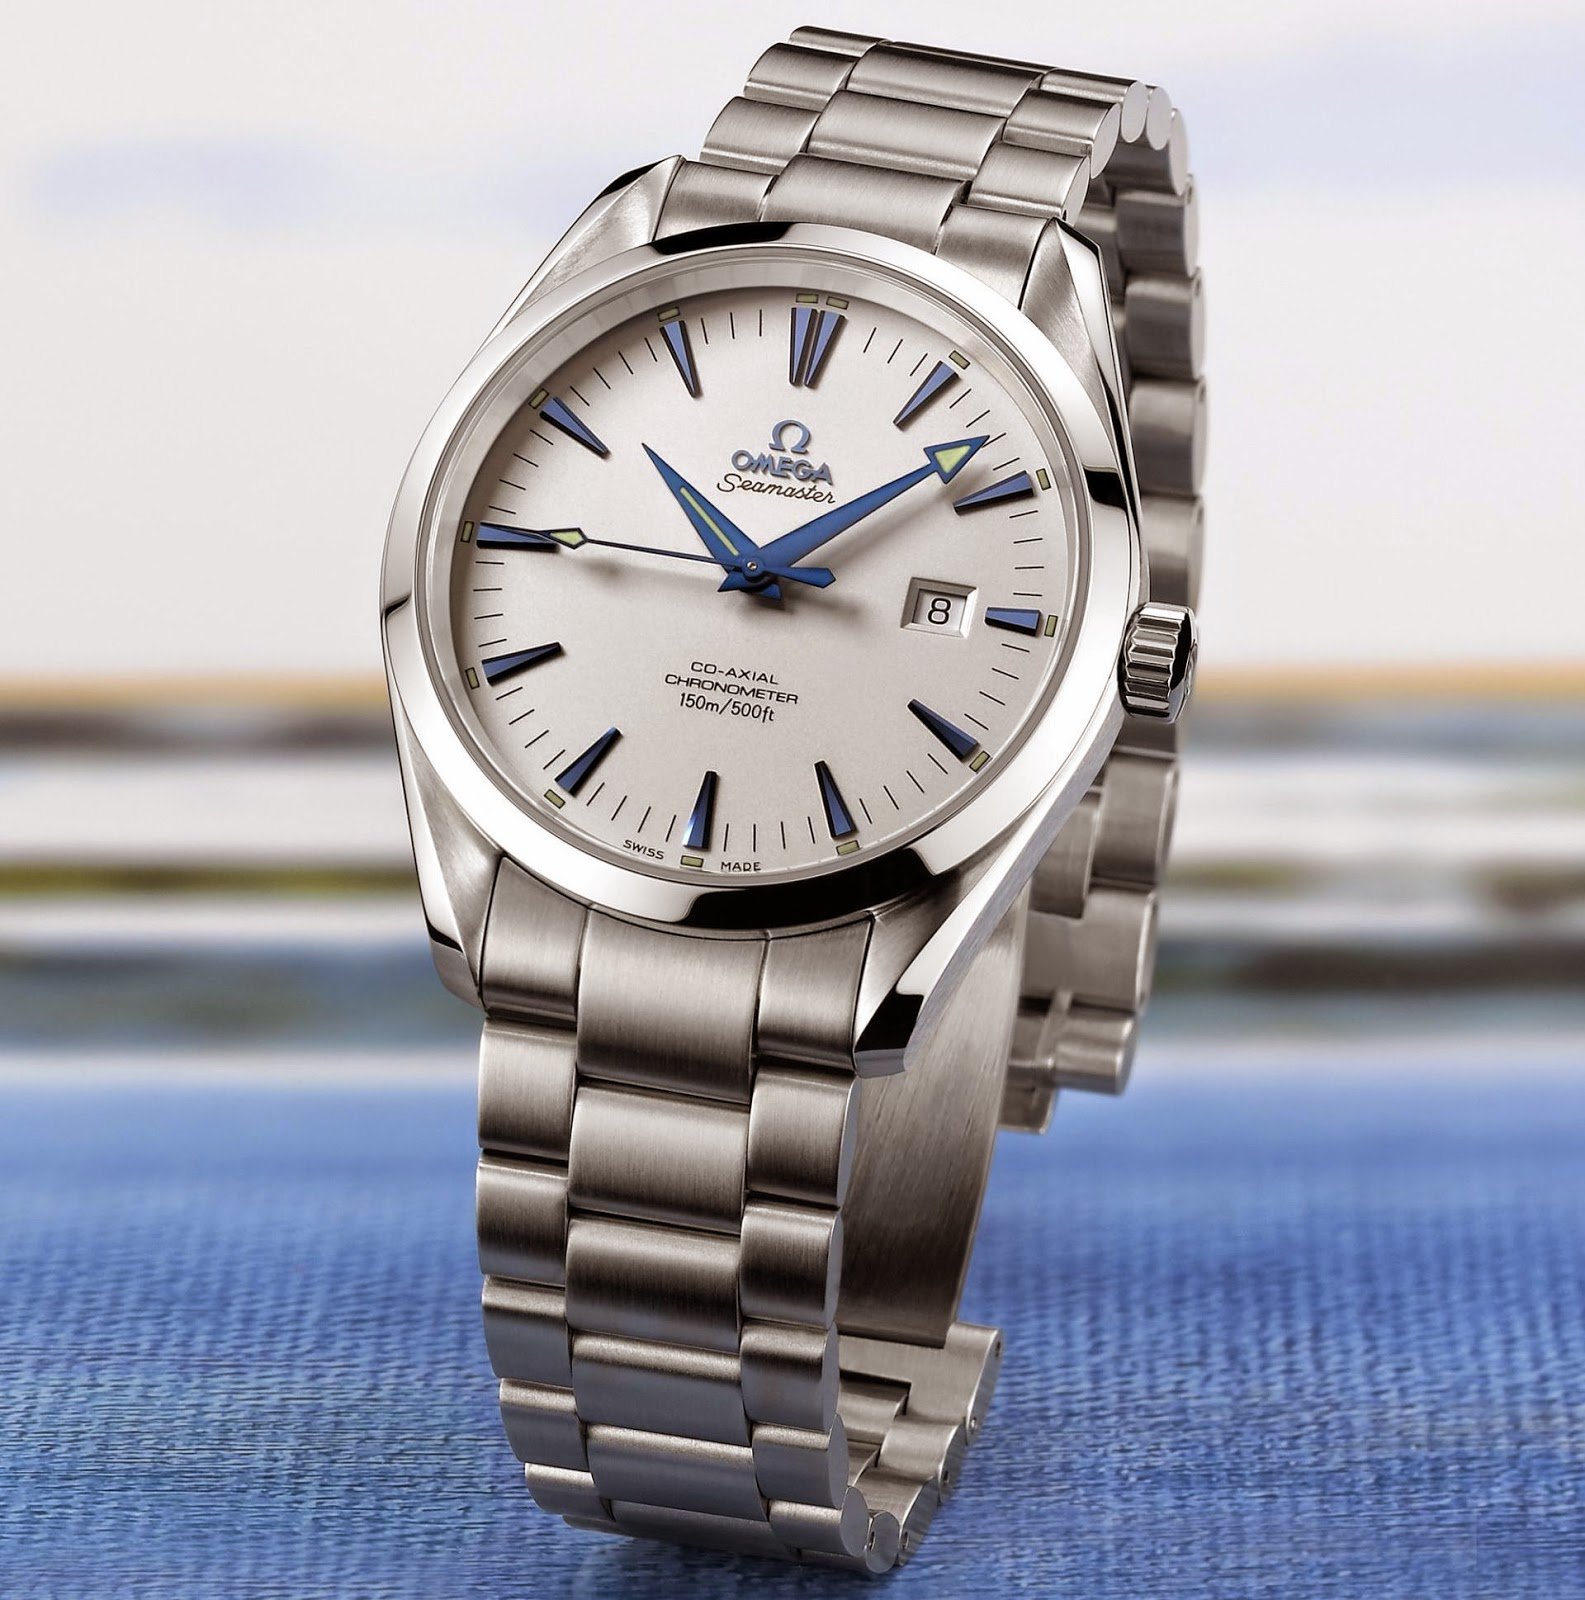 OMEGA Seamaster Aqua Terra, Stainless Steel Case, 41 mm, Silvered Opaline Dial